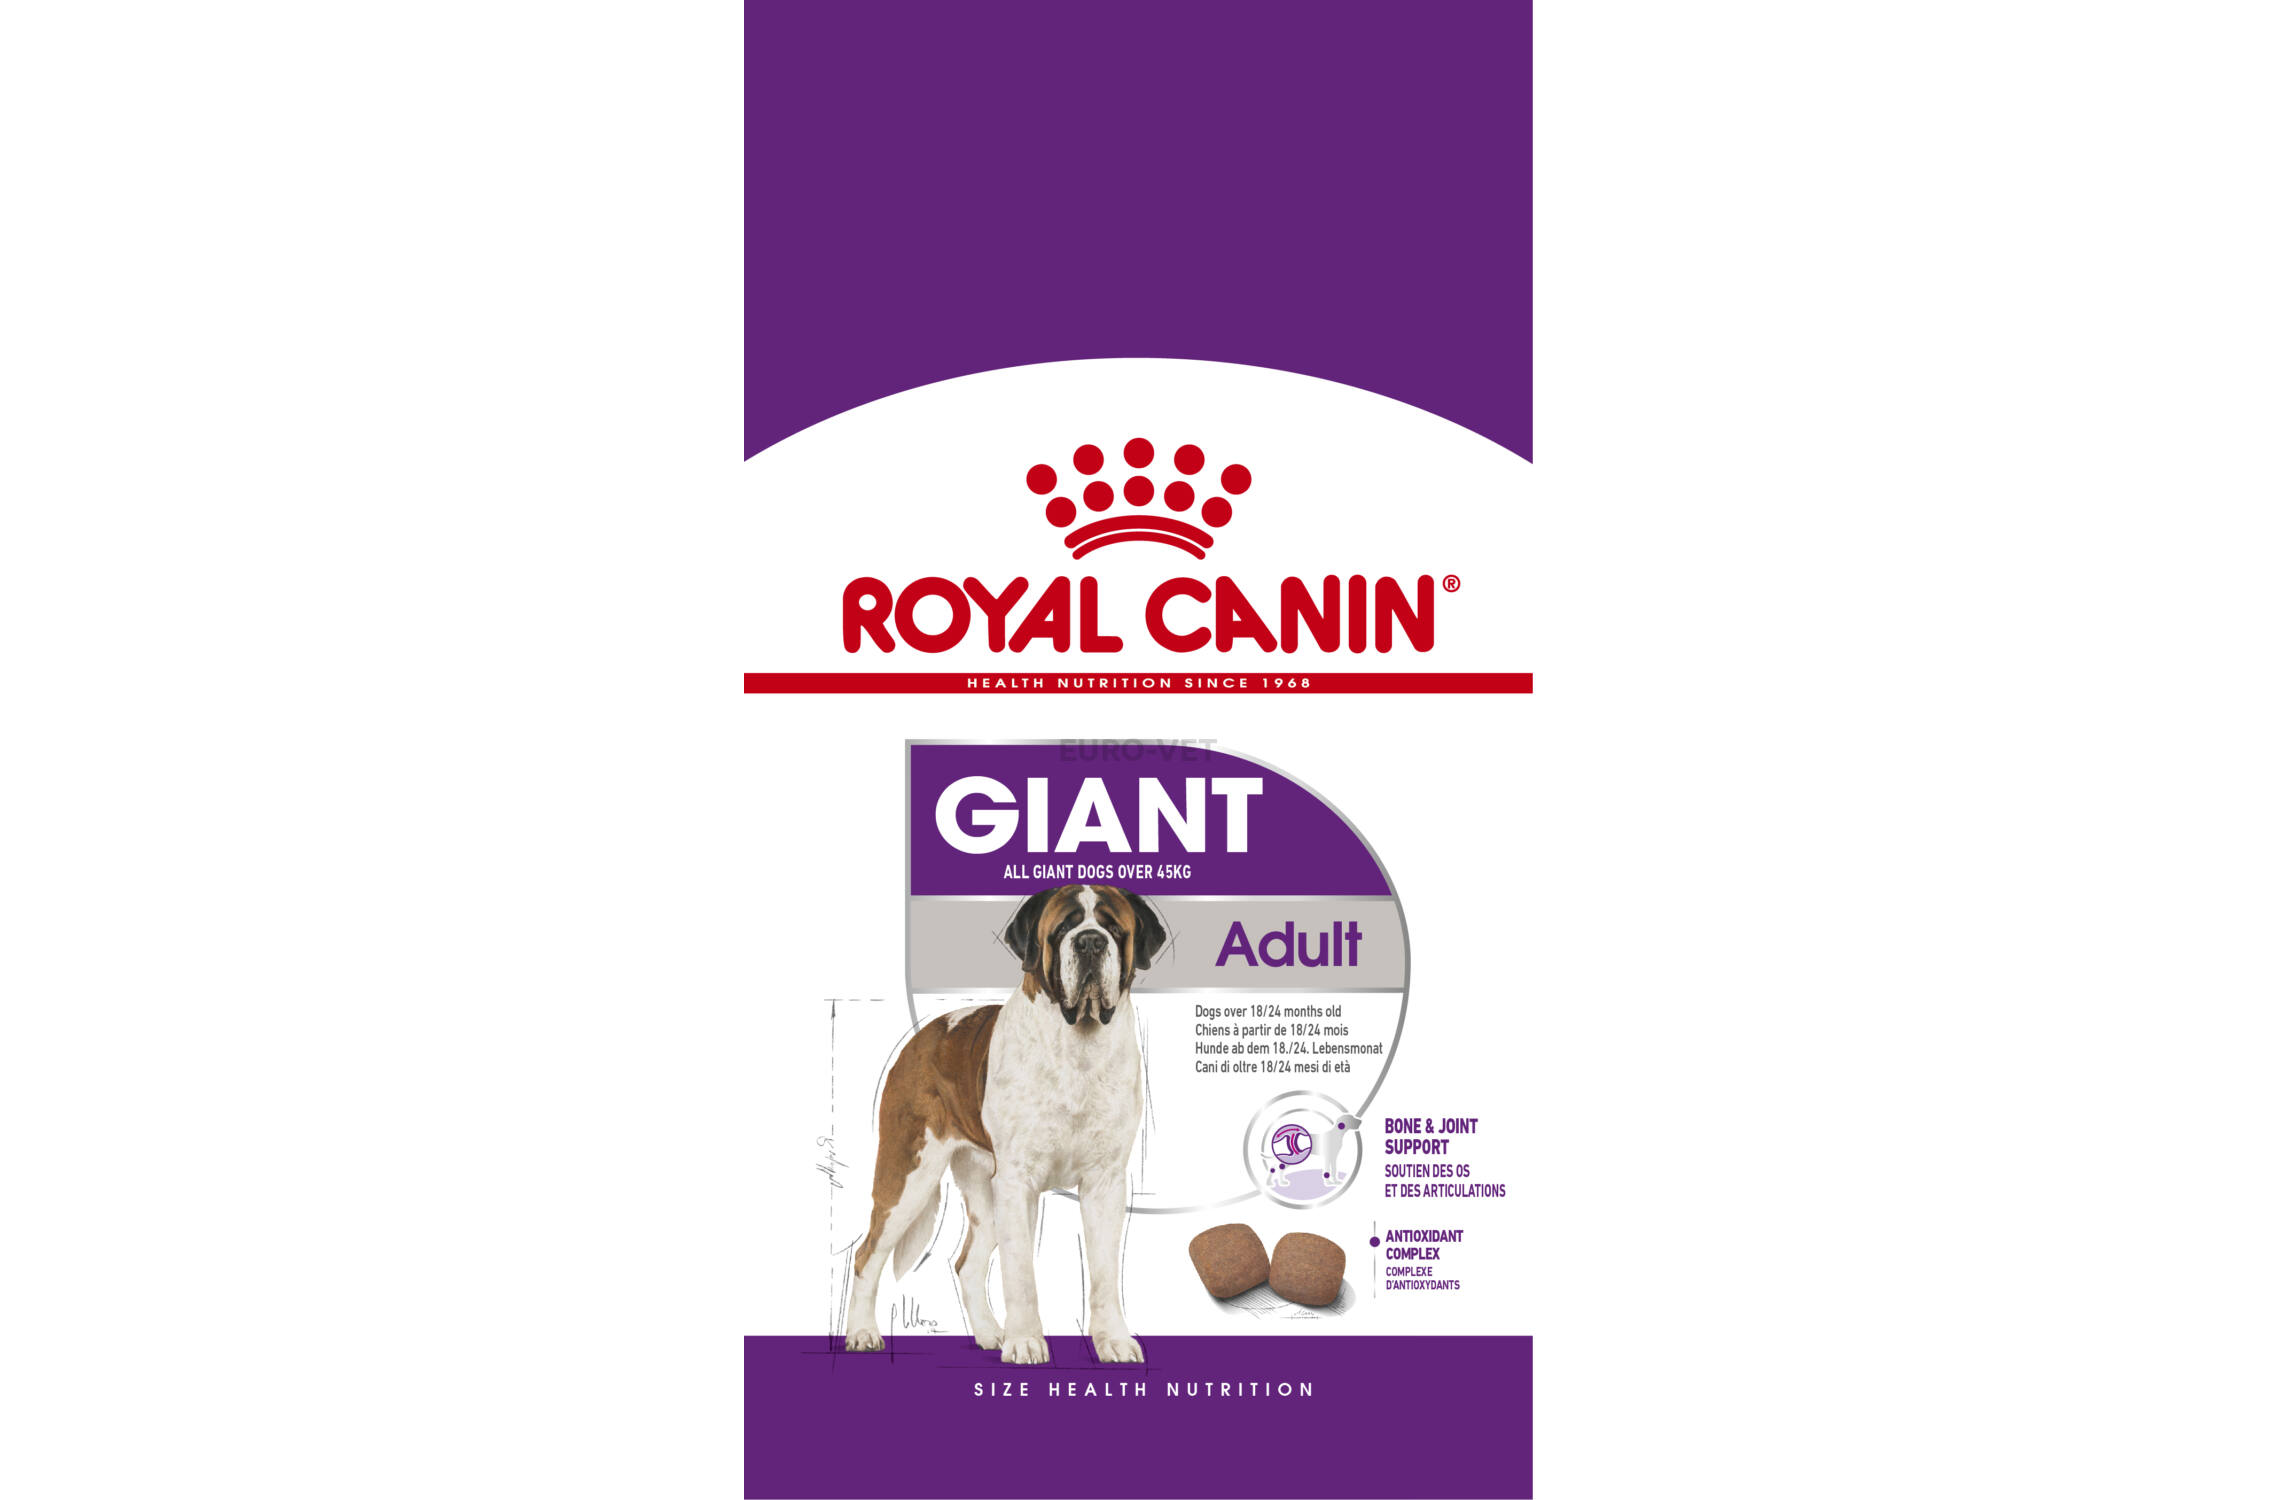 Royal Canin Giant Adult 15 kg - Feed